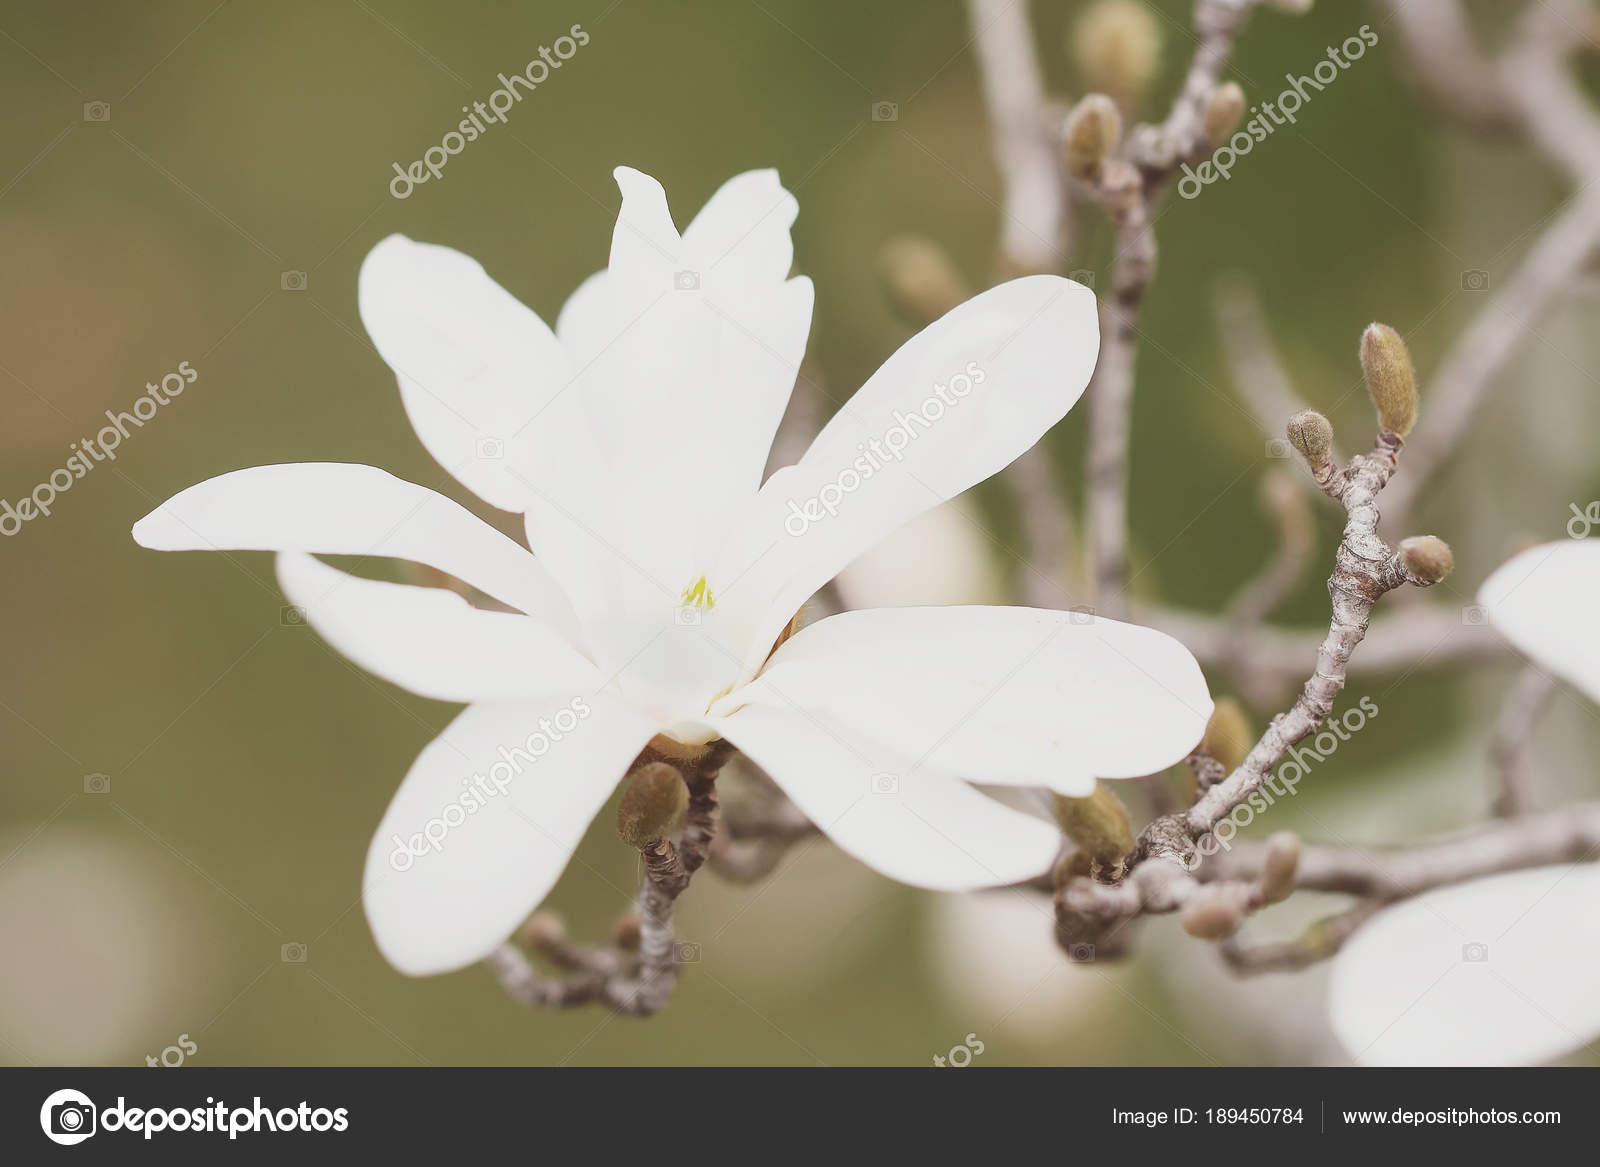 Magnolia flowers grow tree spring stock photo 26101981 189450784 magnolia flowers grow tree spring stock photo mightylinksfo